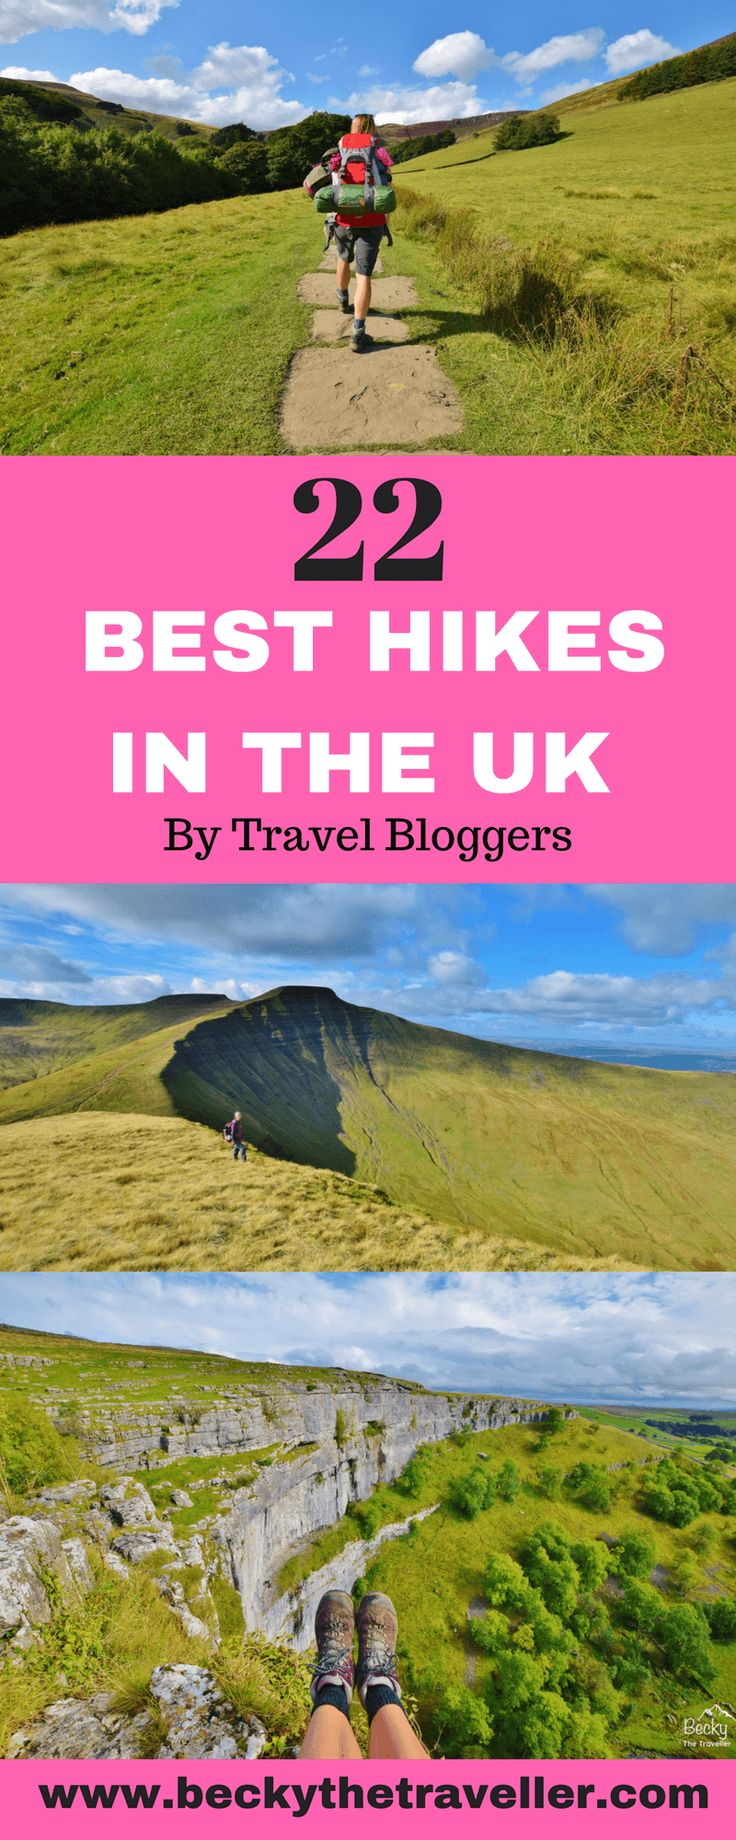 Explore #UKTour #UKTravel inUnited Kingdom through walking & hiking, be inspired by hiking in Holidays.